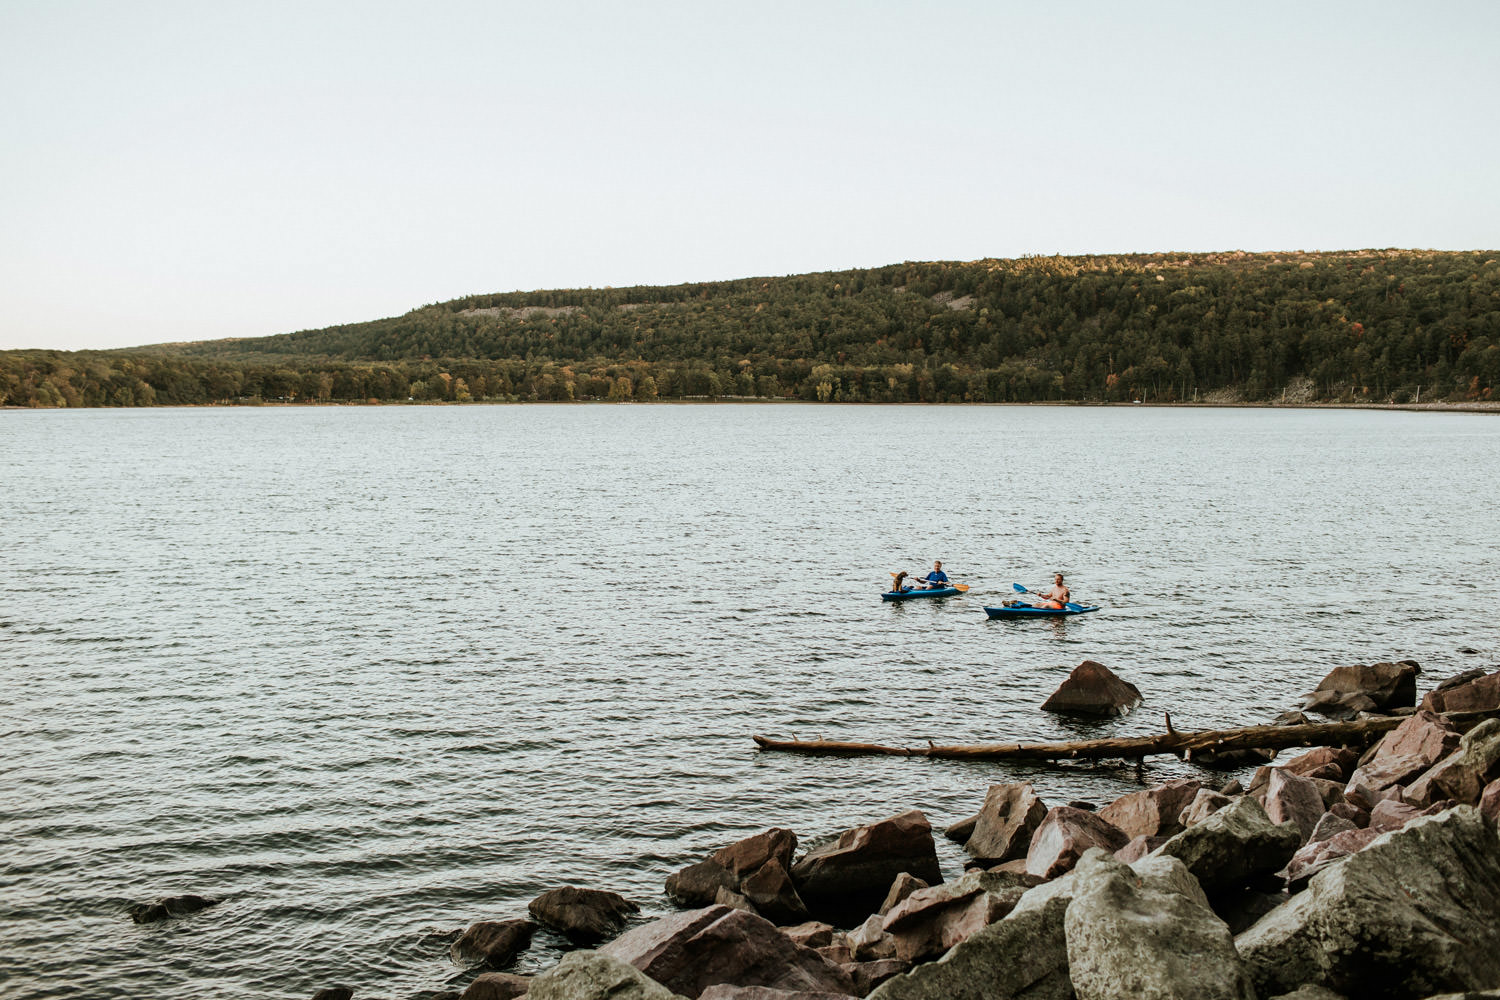 kayakers on the devil's lake in Wisconsin